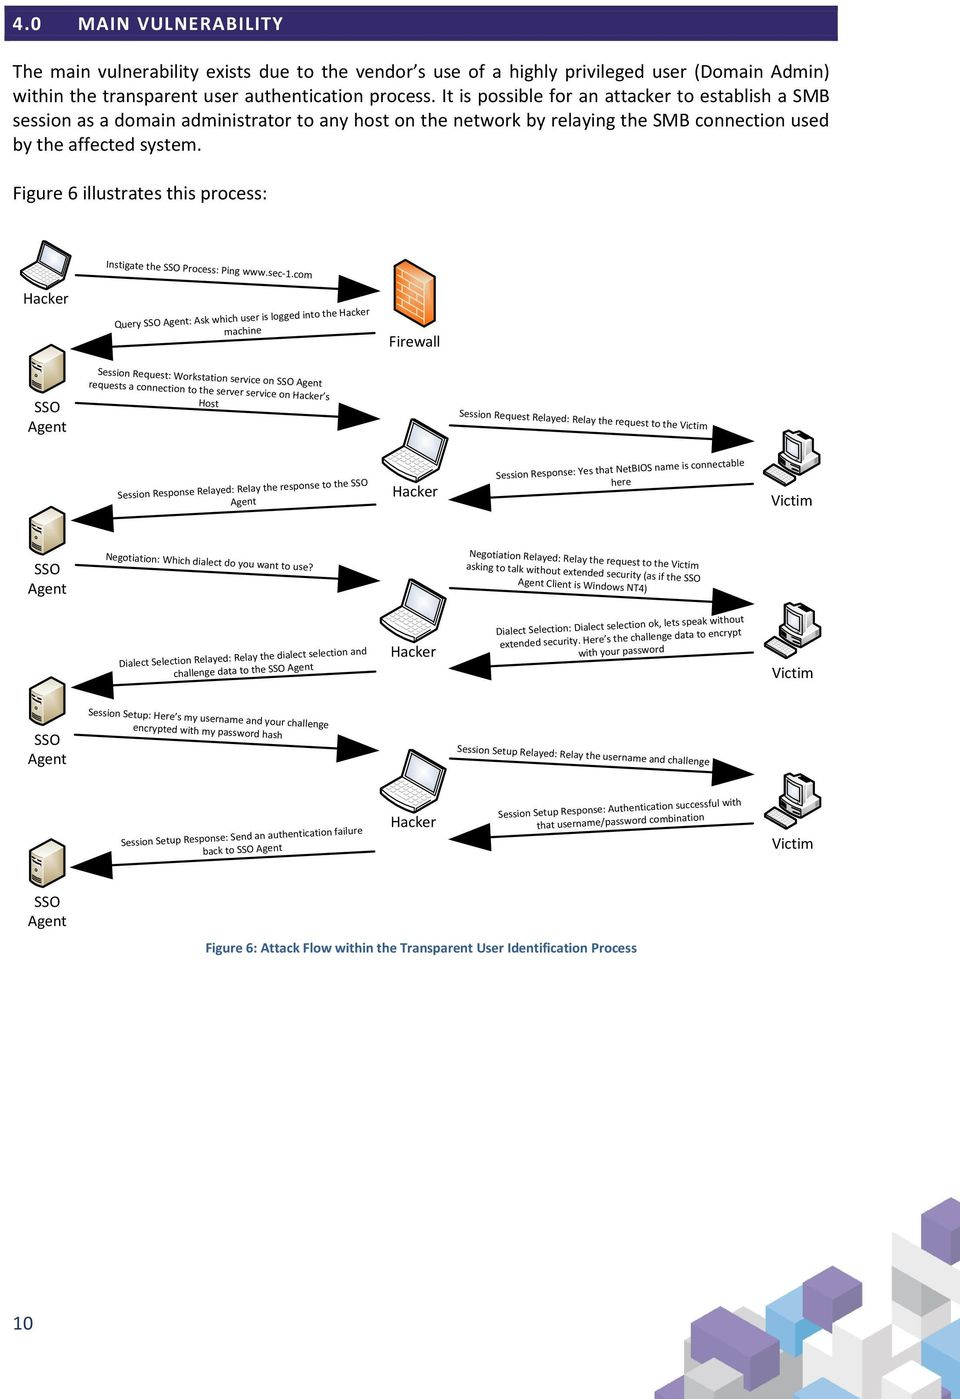 Figure 6 illustrates this process: Instigate the Process: Ping www.sec-1.